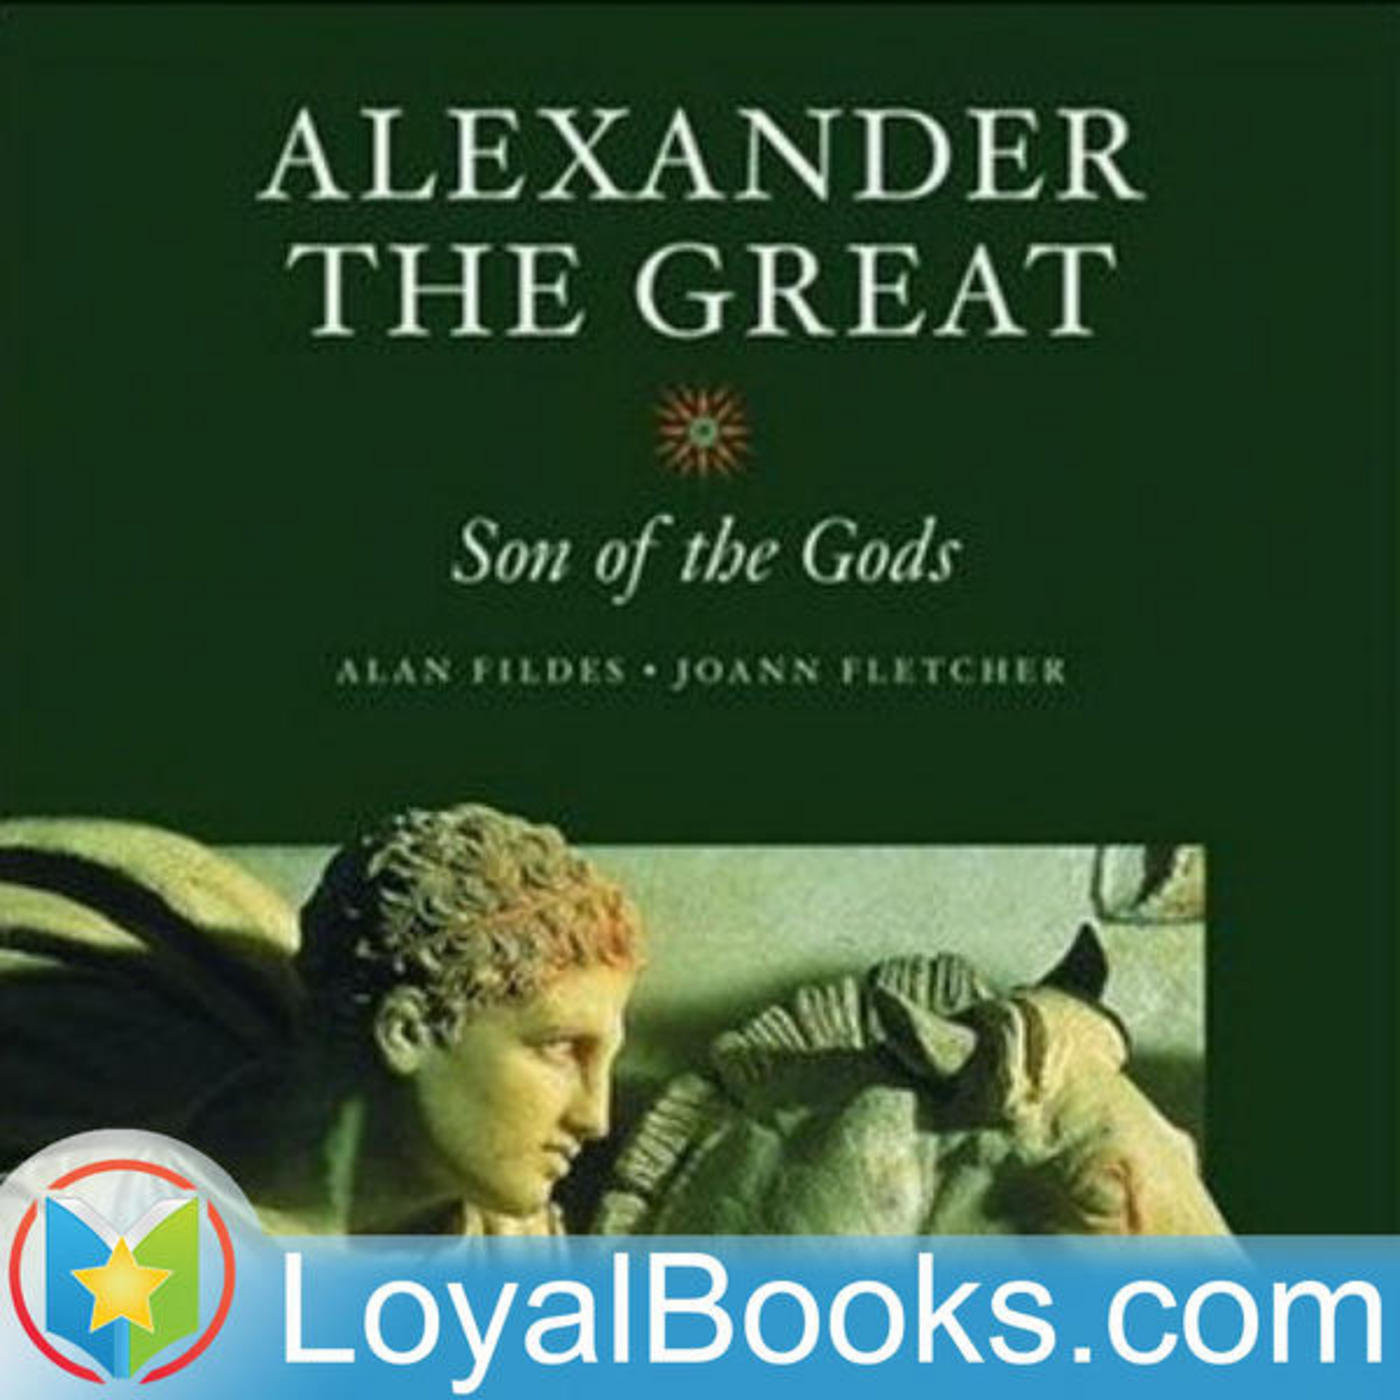 a review of the life and accomplishments of alexander the great